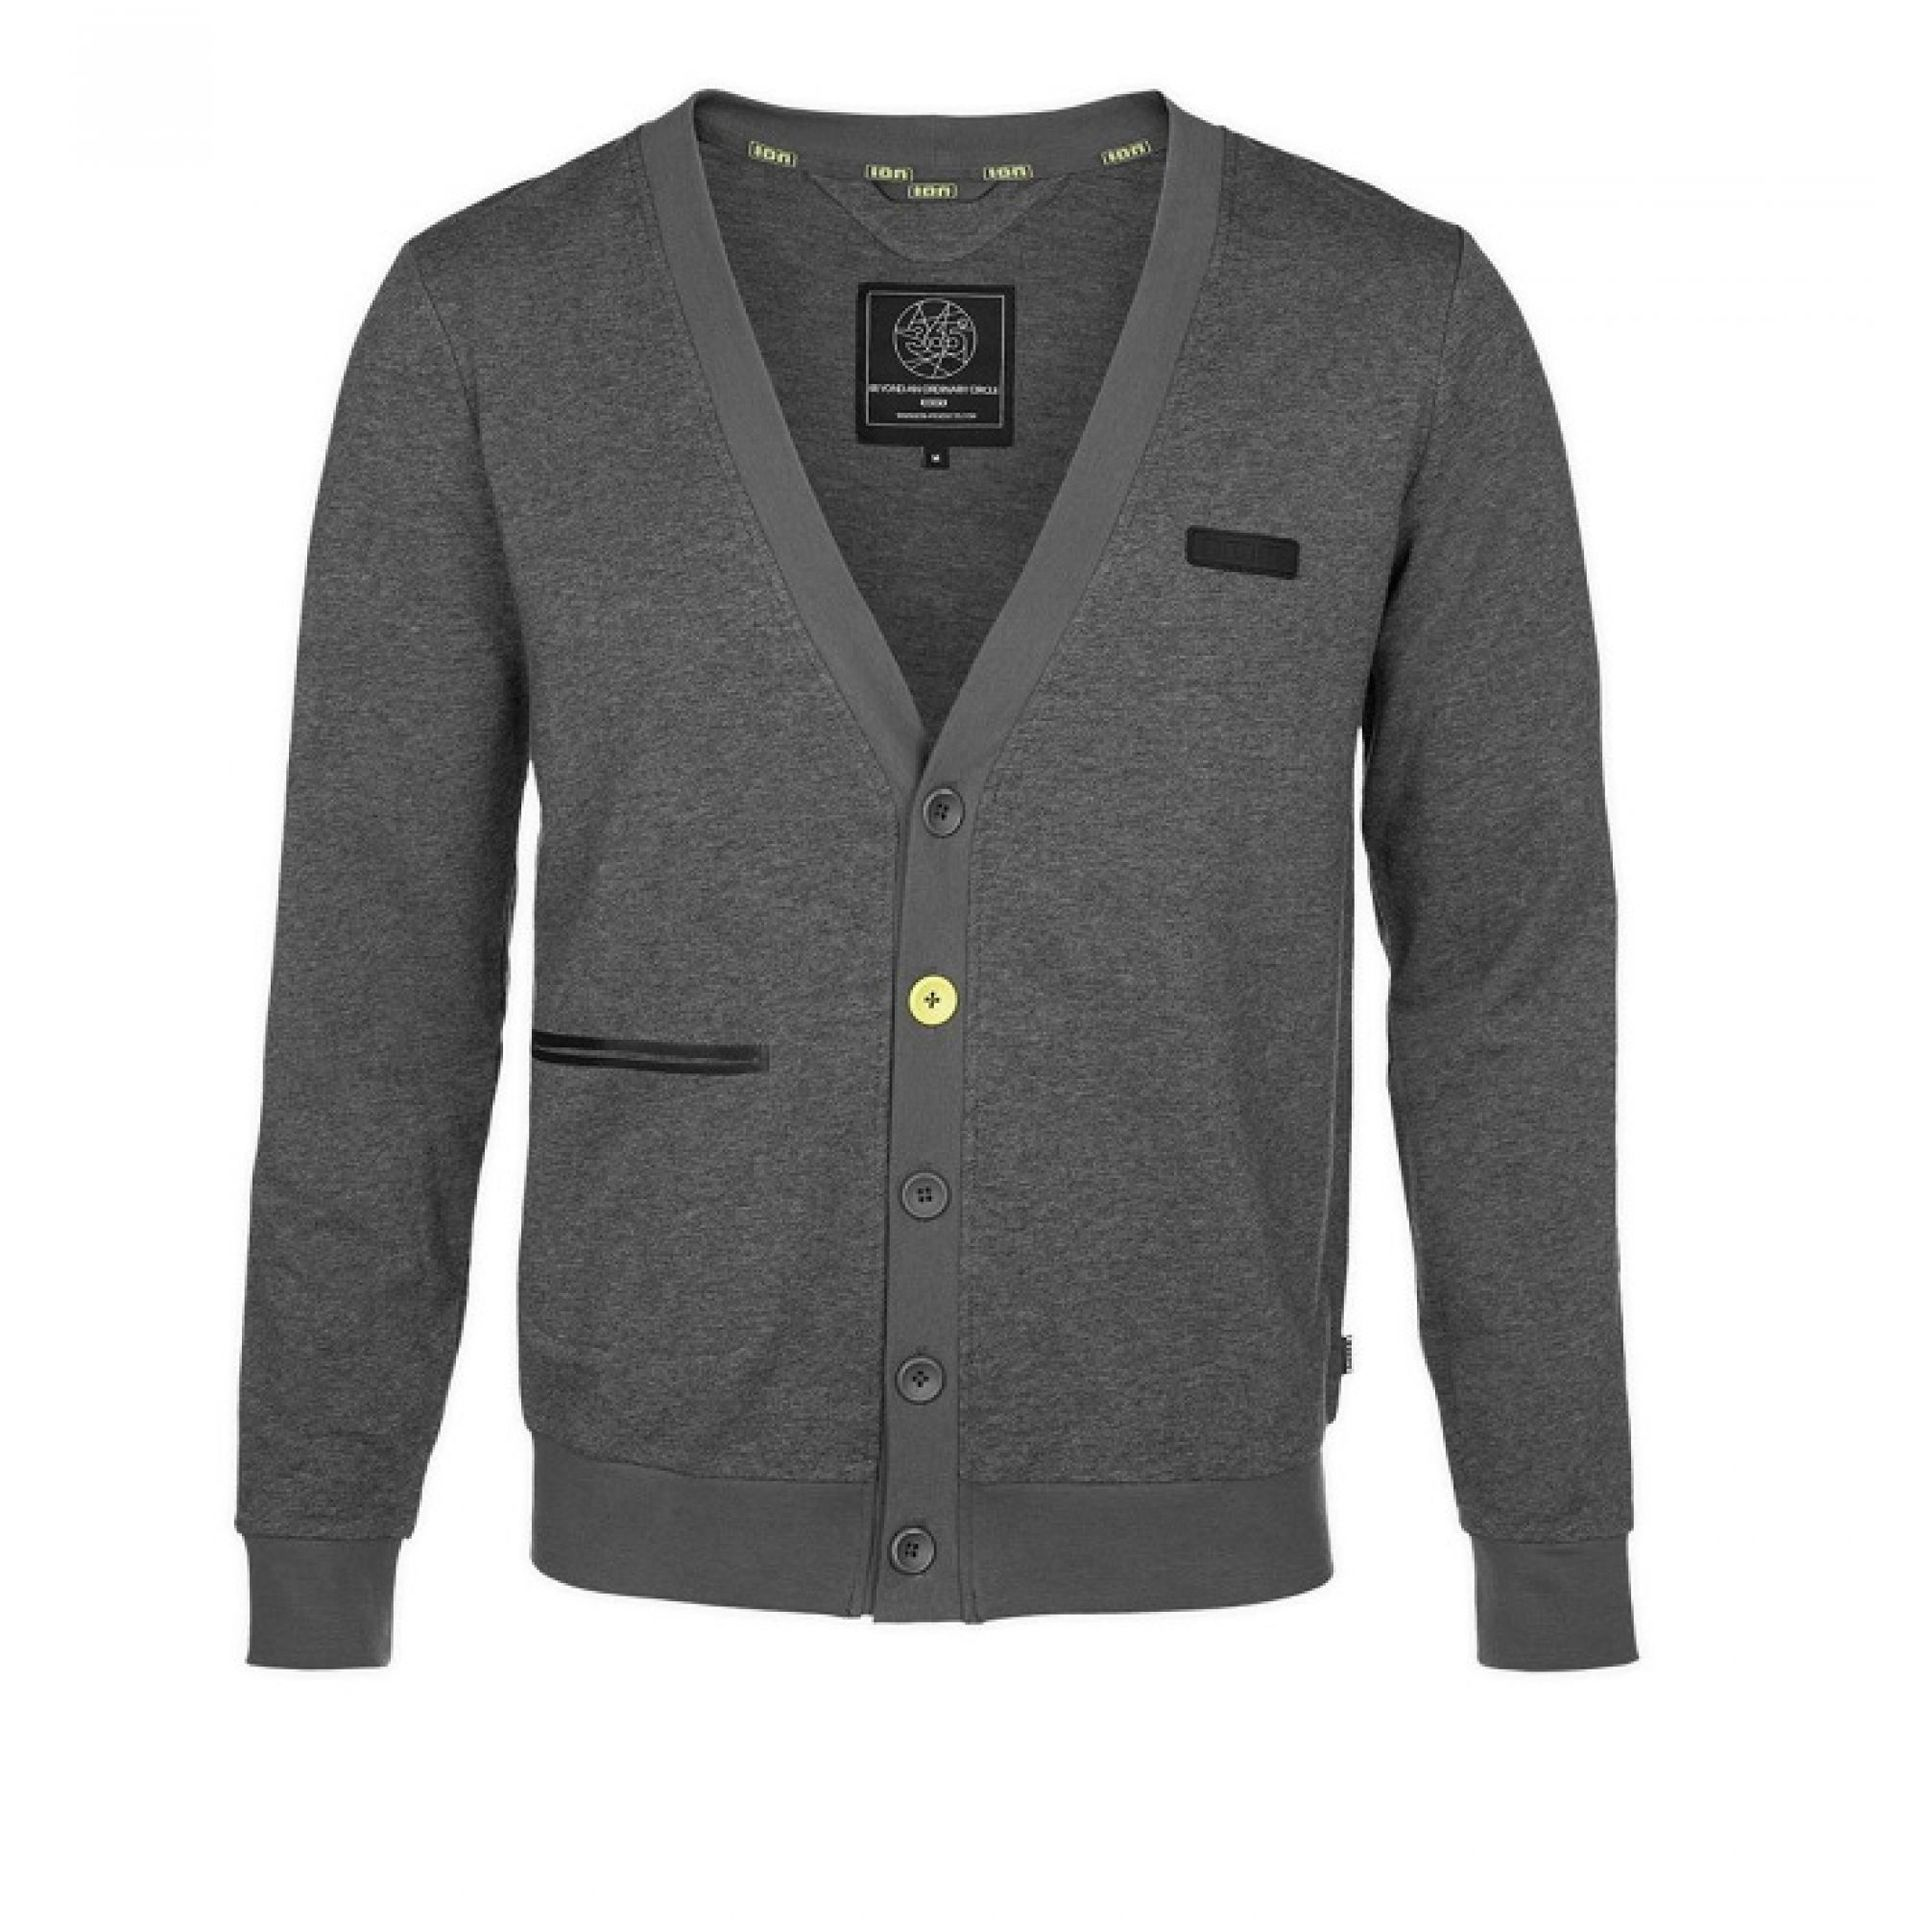 BLUZA ION SWEAT CARDIGAN ROY SZARY